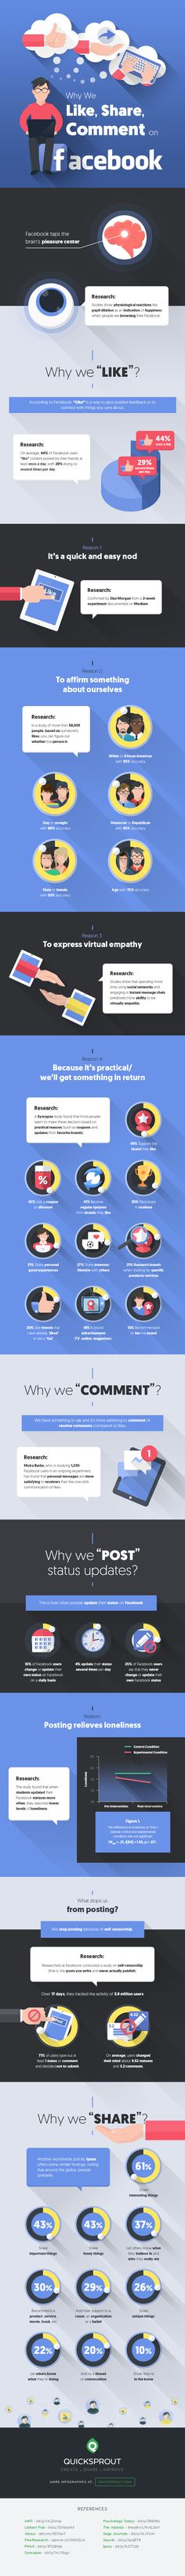 Why We Like, Comment, and Share on Facebook #infographic